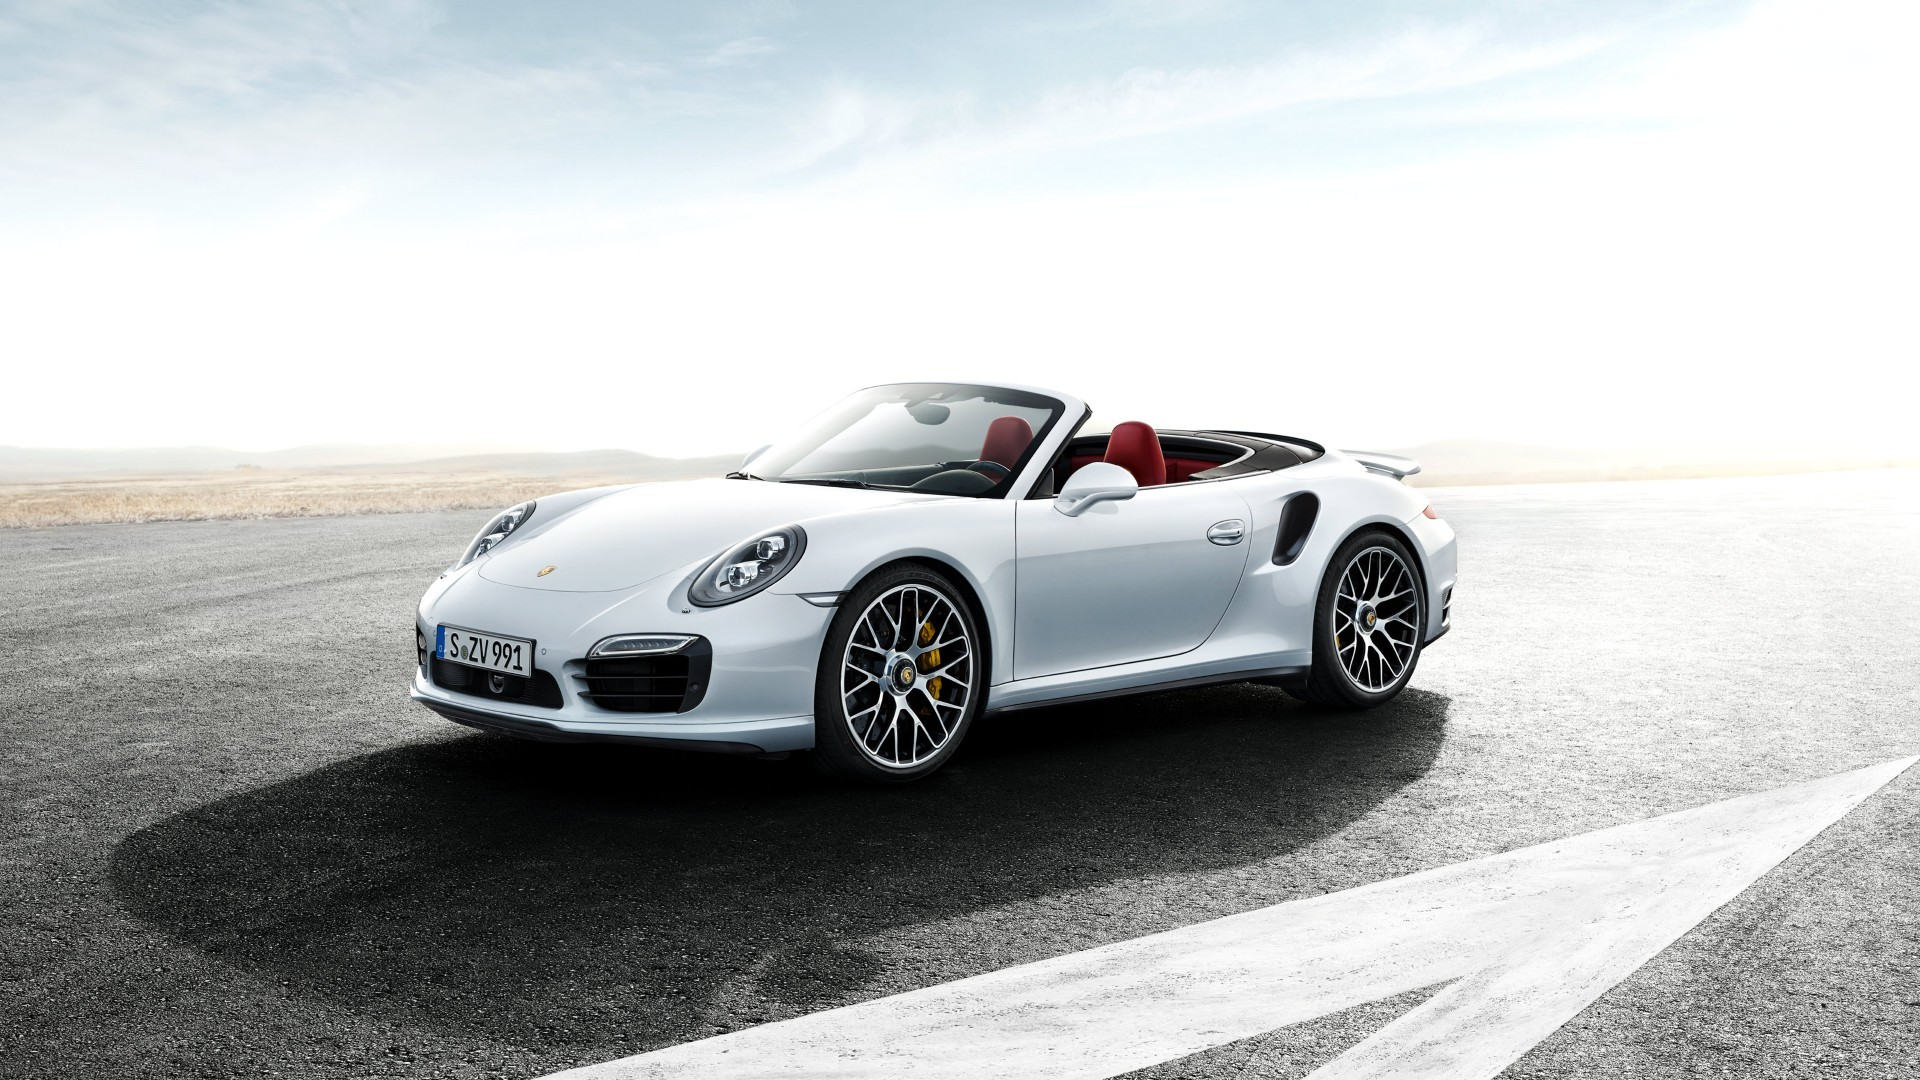 porsche 911 turbo s cabriolet 991 specs 2013 2014. Black Bedroom Furniture Sets. Home Design Ideas